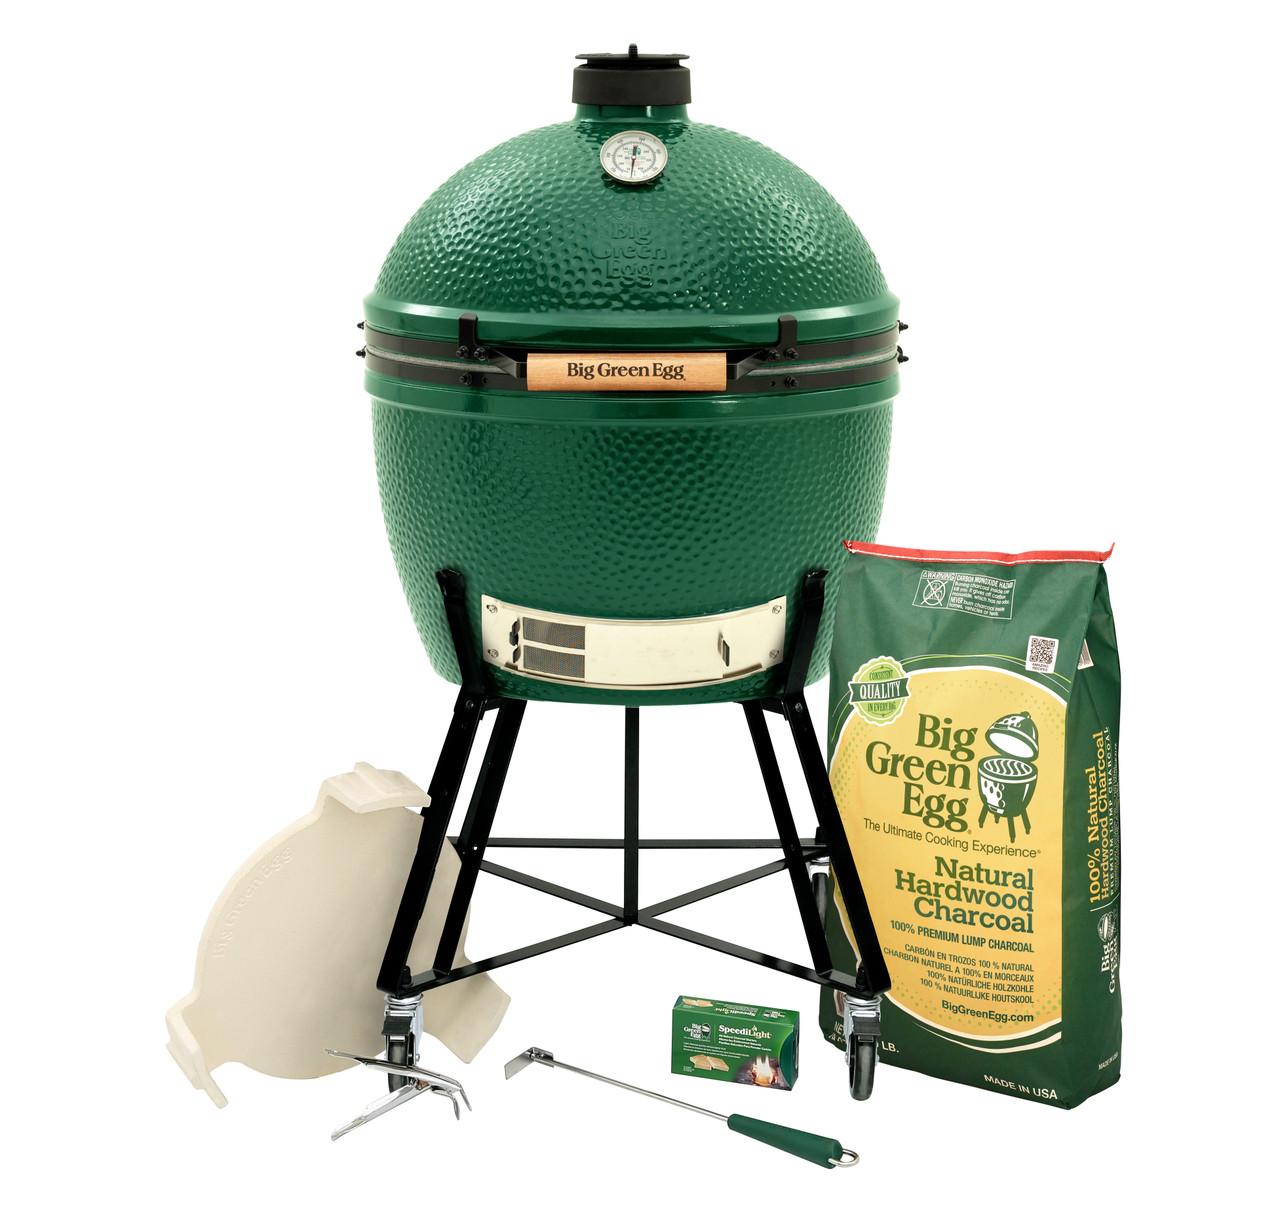 XLarge Big Green Egg in Nest Package